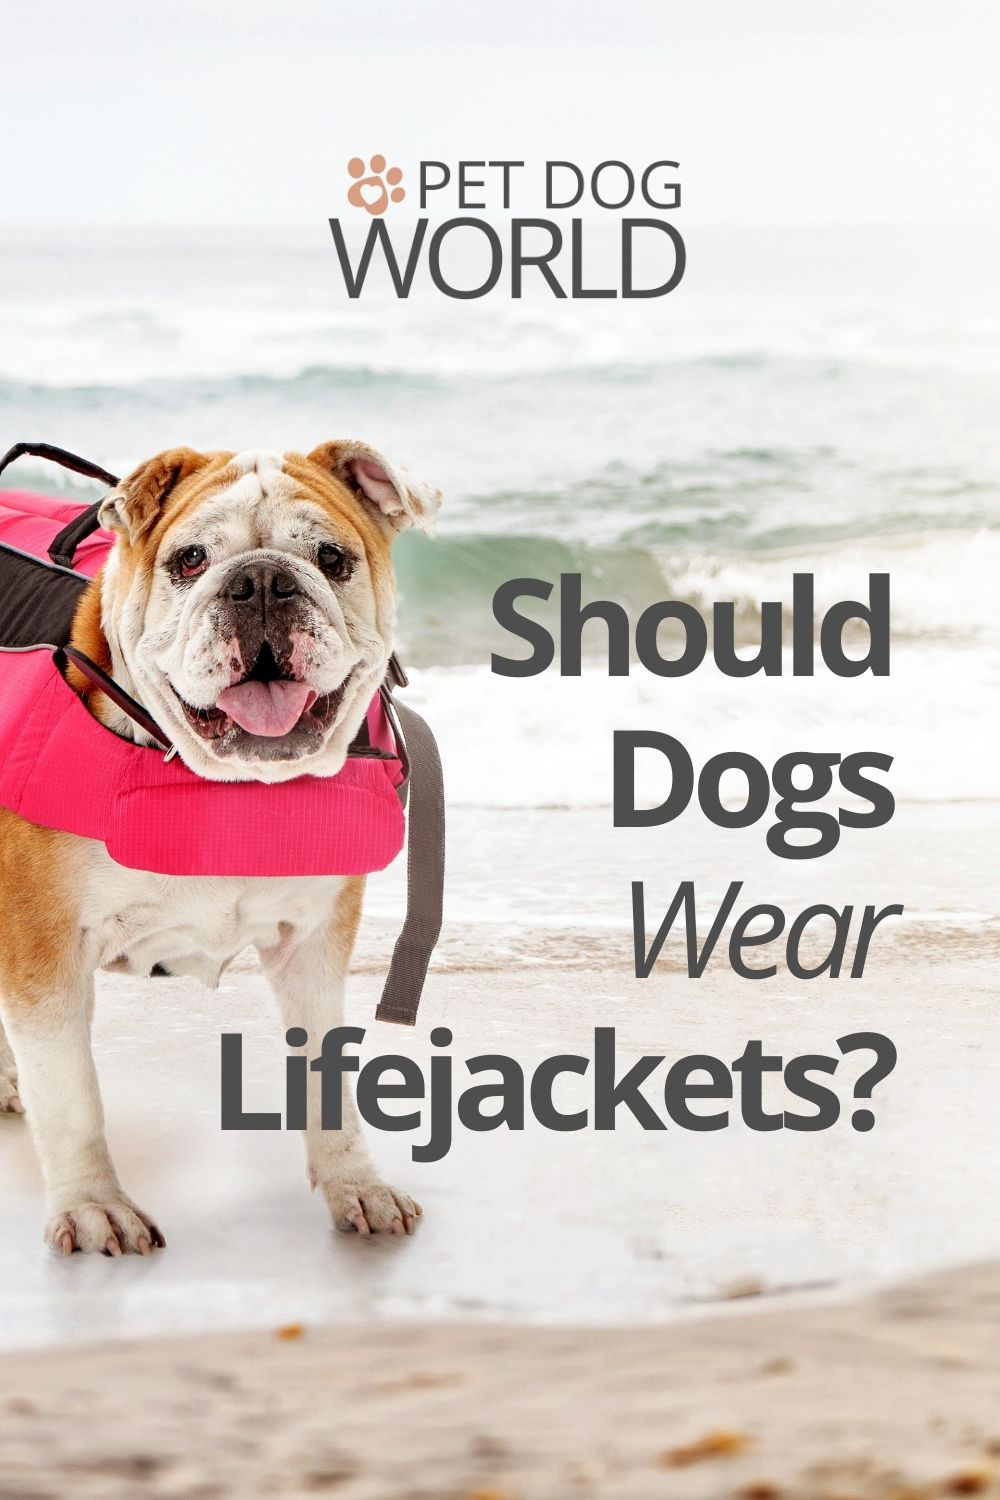 If you're going on holiday or anywhere with deep water or water with strong currents, you should consider getting your dog a life jacket.